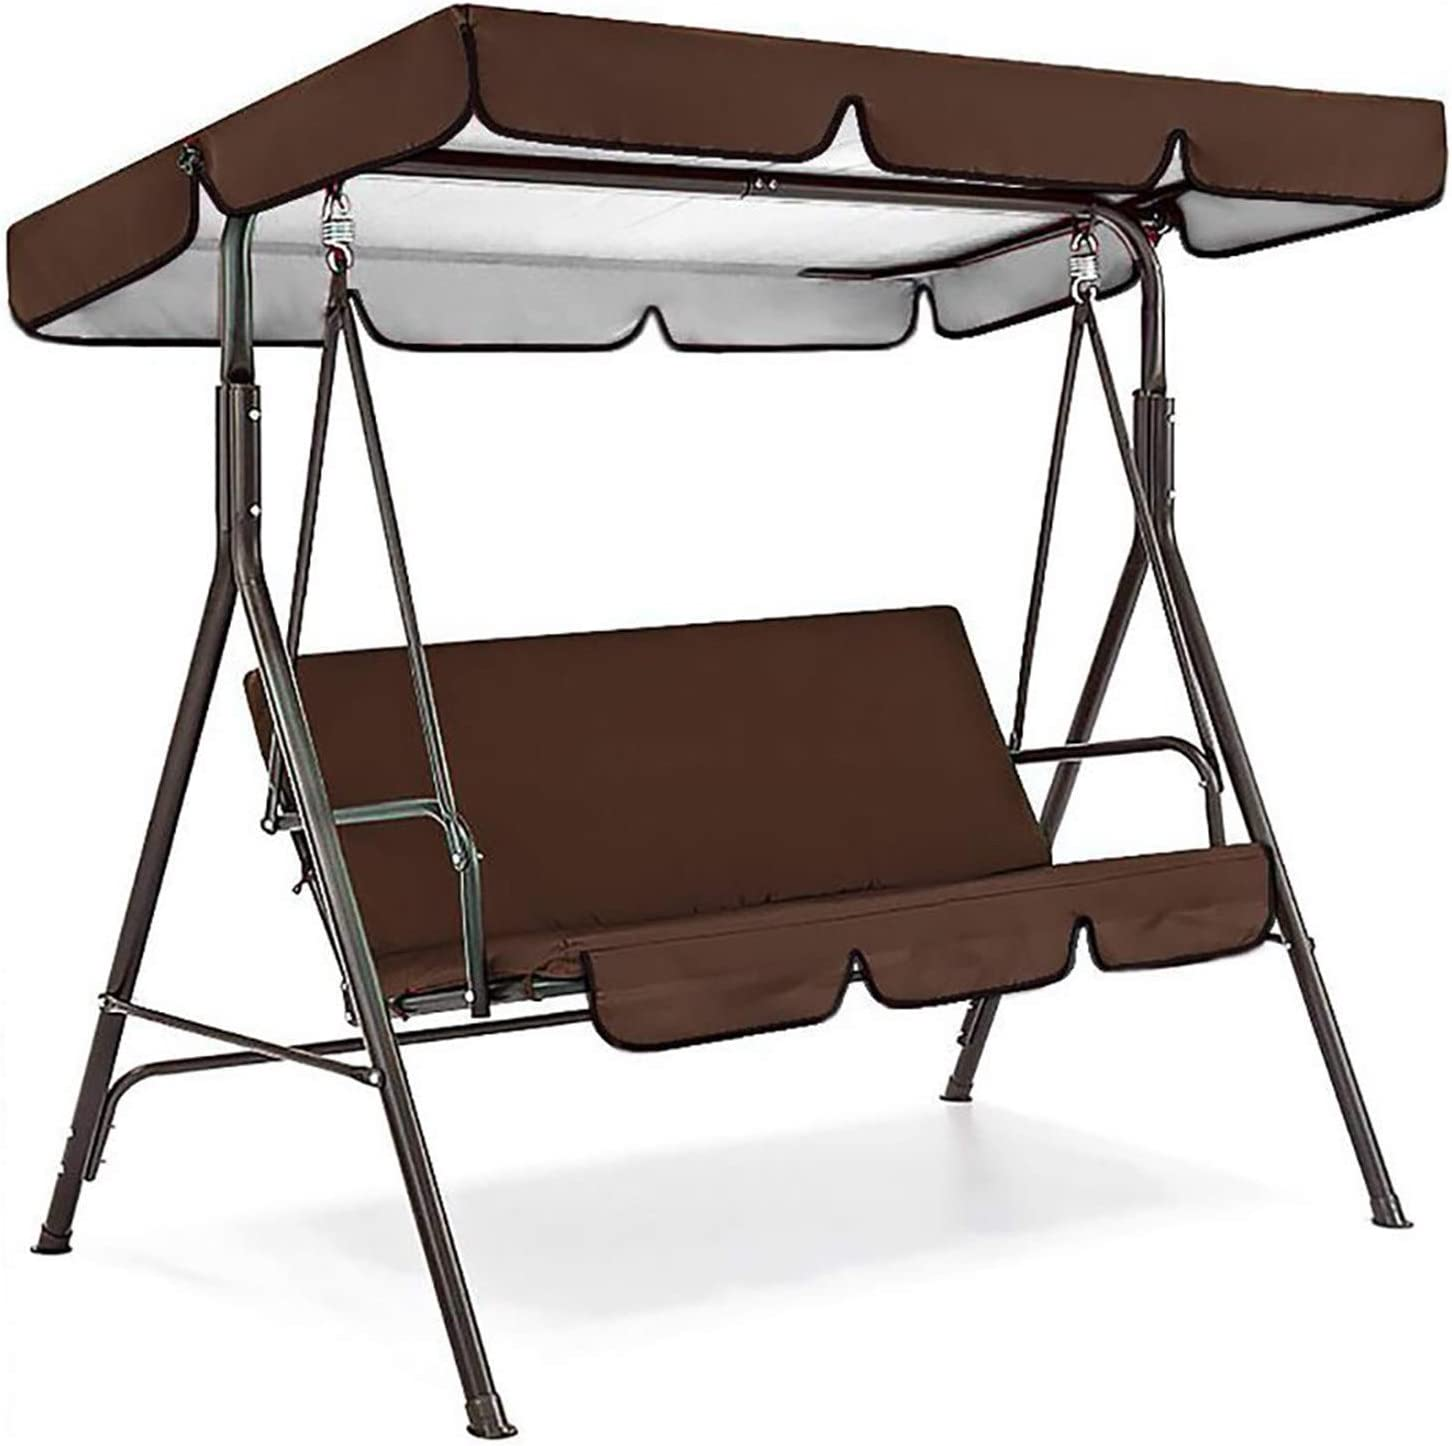 Outdoor Patio Swing Canopy Replacement Top Cover & Cushions, Replacement Cover and Chair Cover for Swing Canopy, Waterproof UV Protection Swing Top Cover, Garden Seater Sun Shade Treasures (Brown)